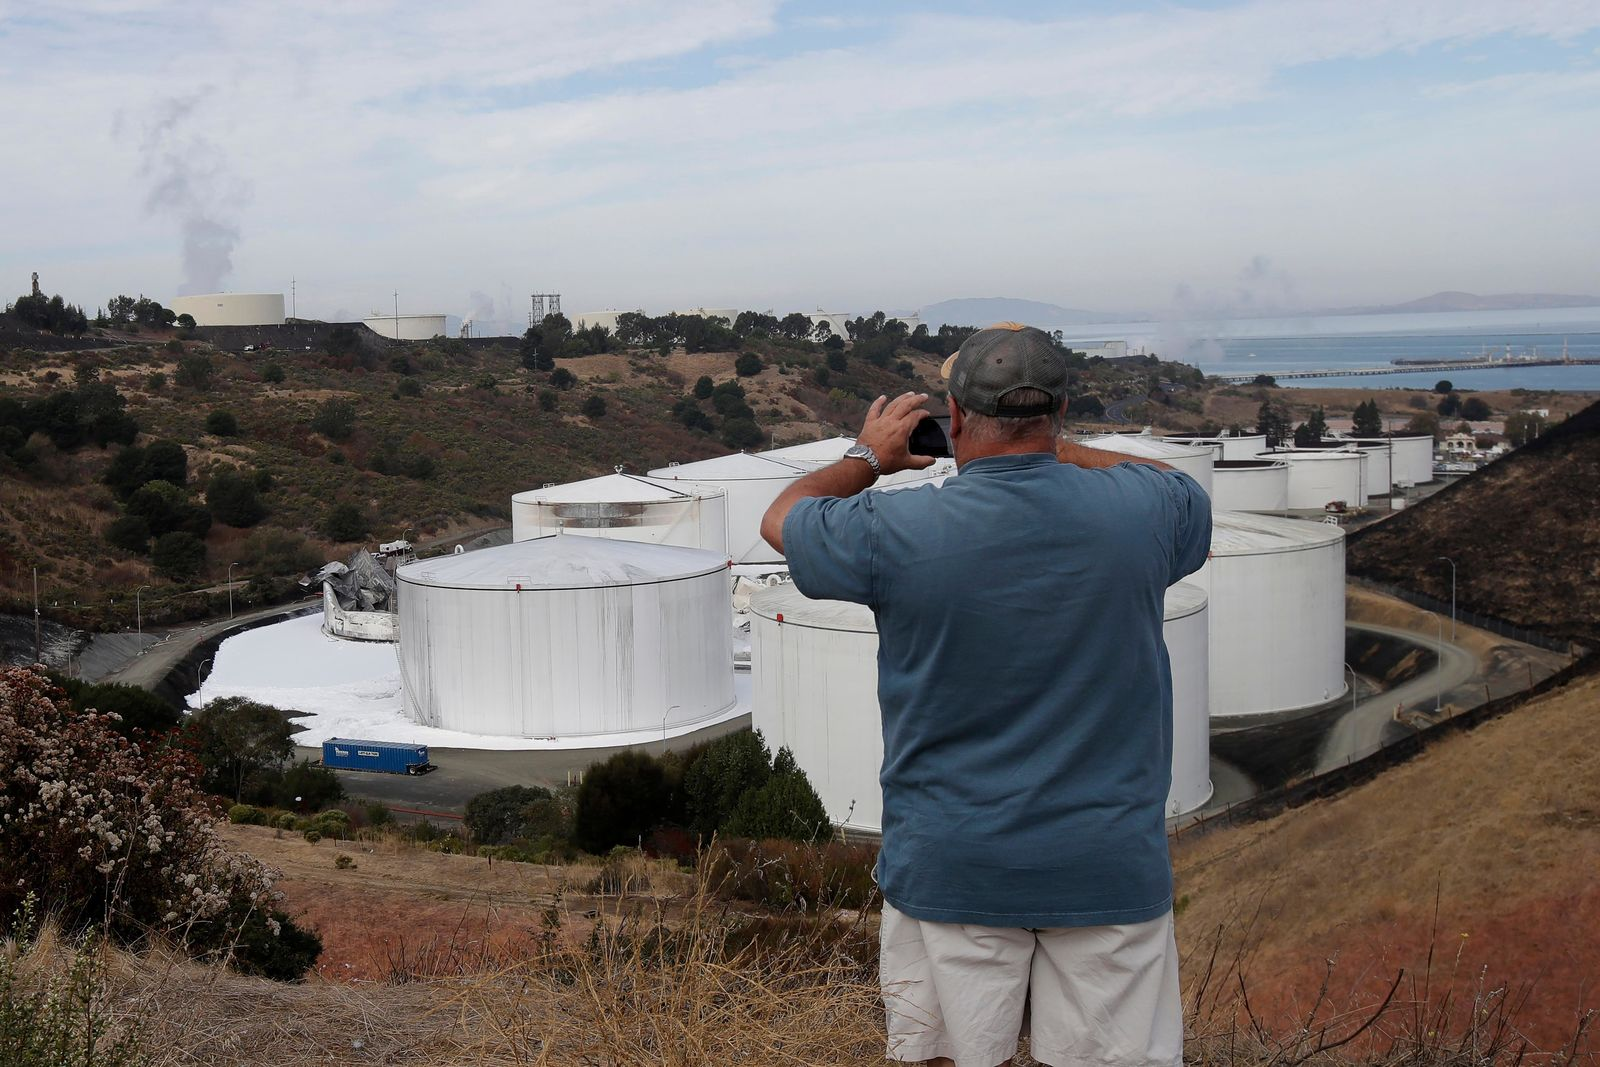 Mark Storey takes photos of damage from a Tuesday, Oct. 15, 2019, fire at NuStar Energy fuel storage facility in Crockett, Calif., Wednesday, Oct. 16, 2019. Officials were trying to determine Wednesday if a 4.5 magnitude earthquake triggered an explosion at a fuel storage facility in the San Francisco Bay Area that started a fire and trapped thousands in their homes for hours because of potentially unhealthy air. (AP Photo/Jeff Chiu)